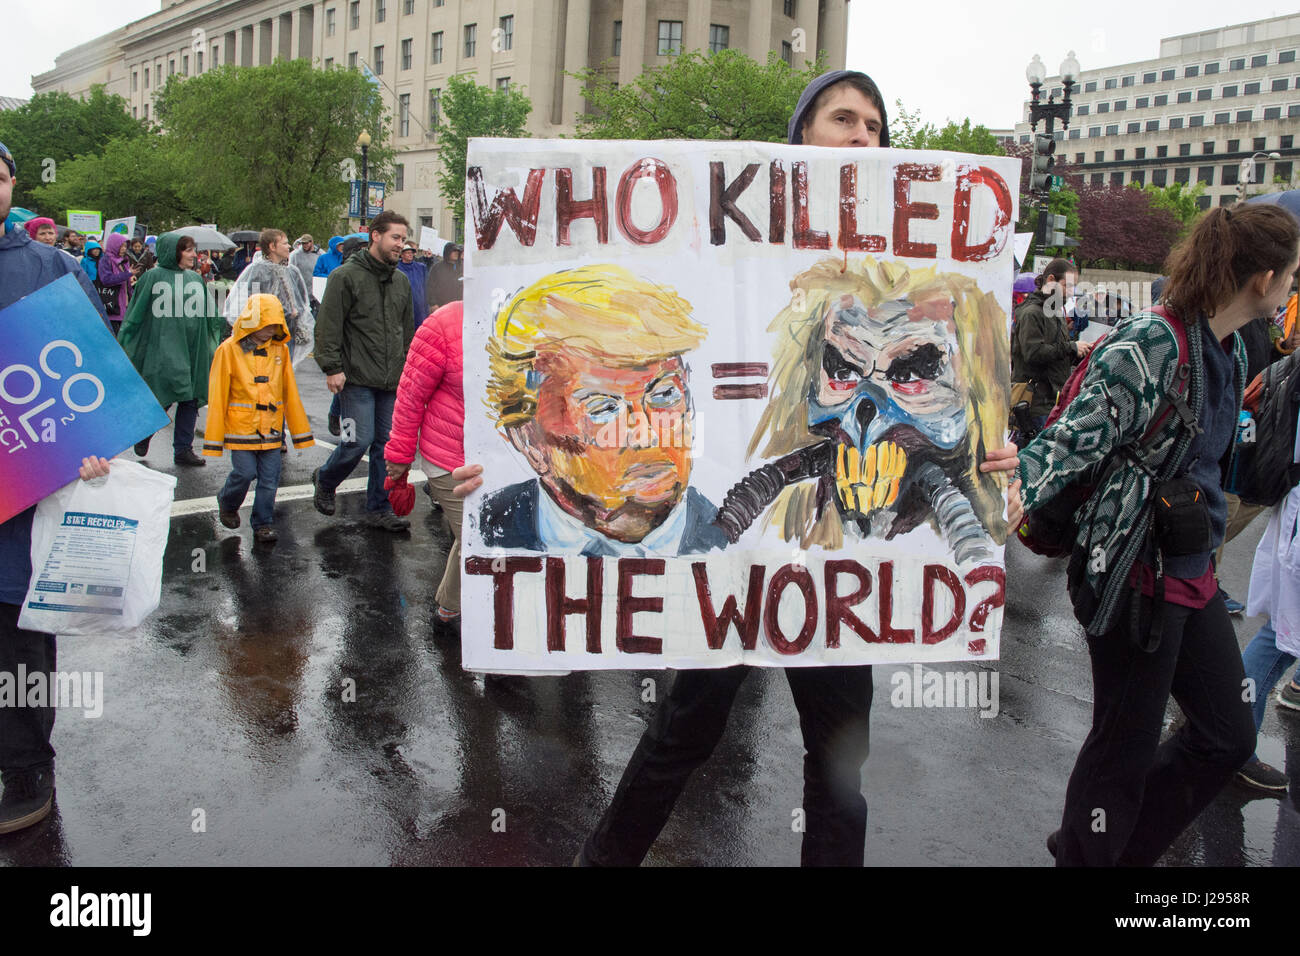 At the March for Science, Washington DC, April 22, 2017 Stock Photo